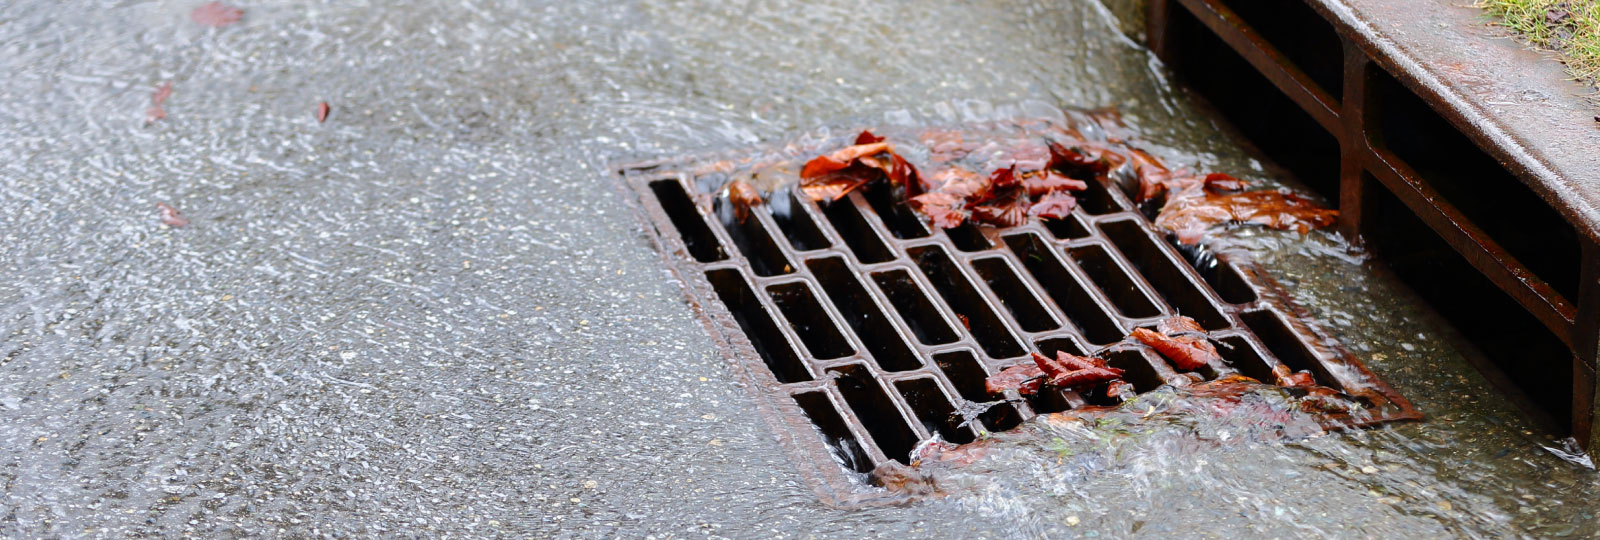 OOS Recycleworks: Stormwater photo